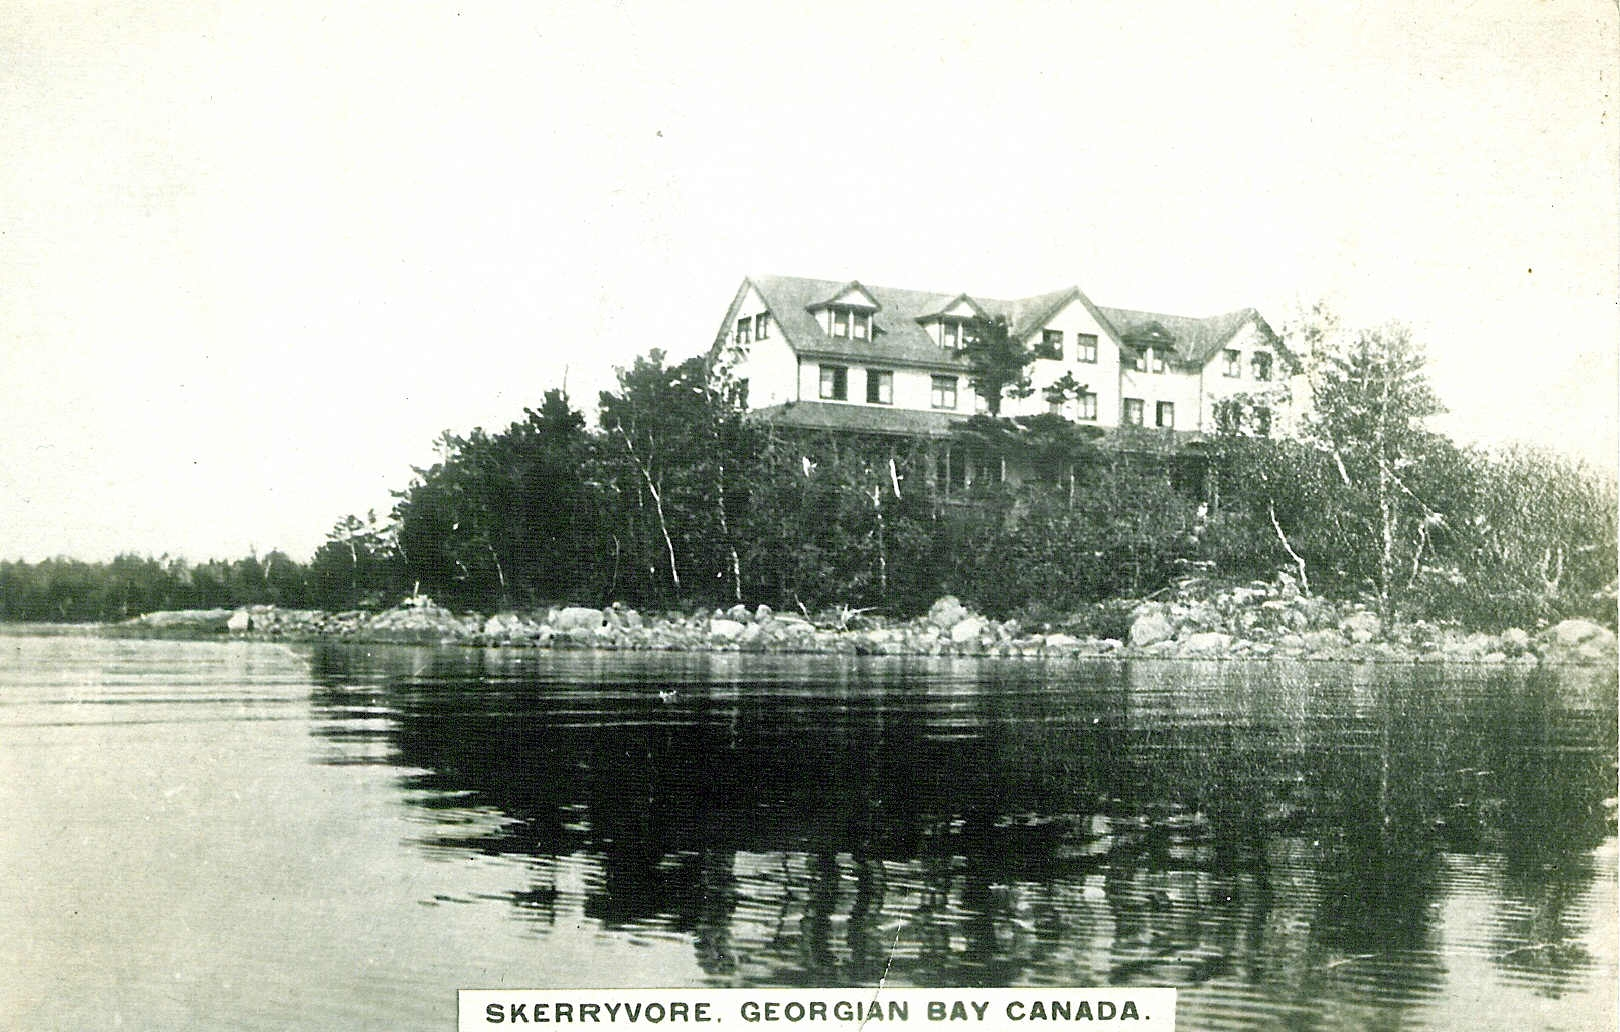 SkerryvoreHotelabout1940